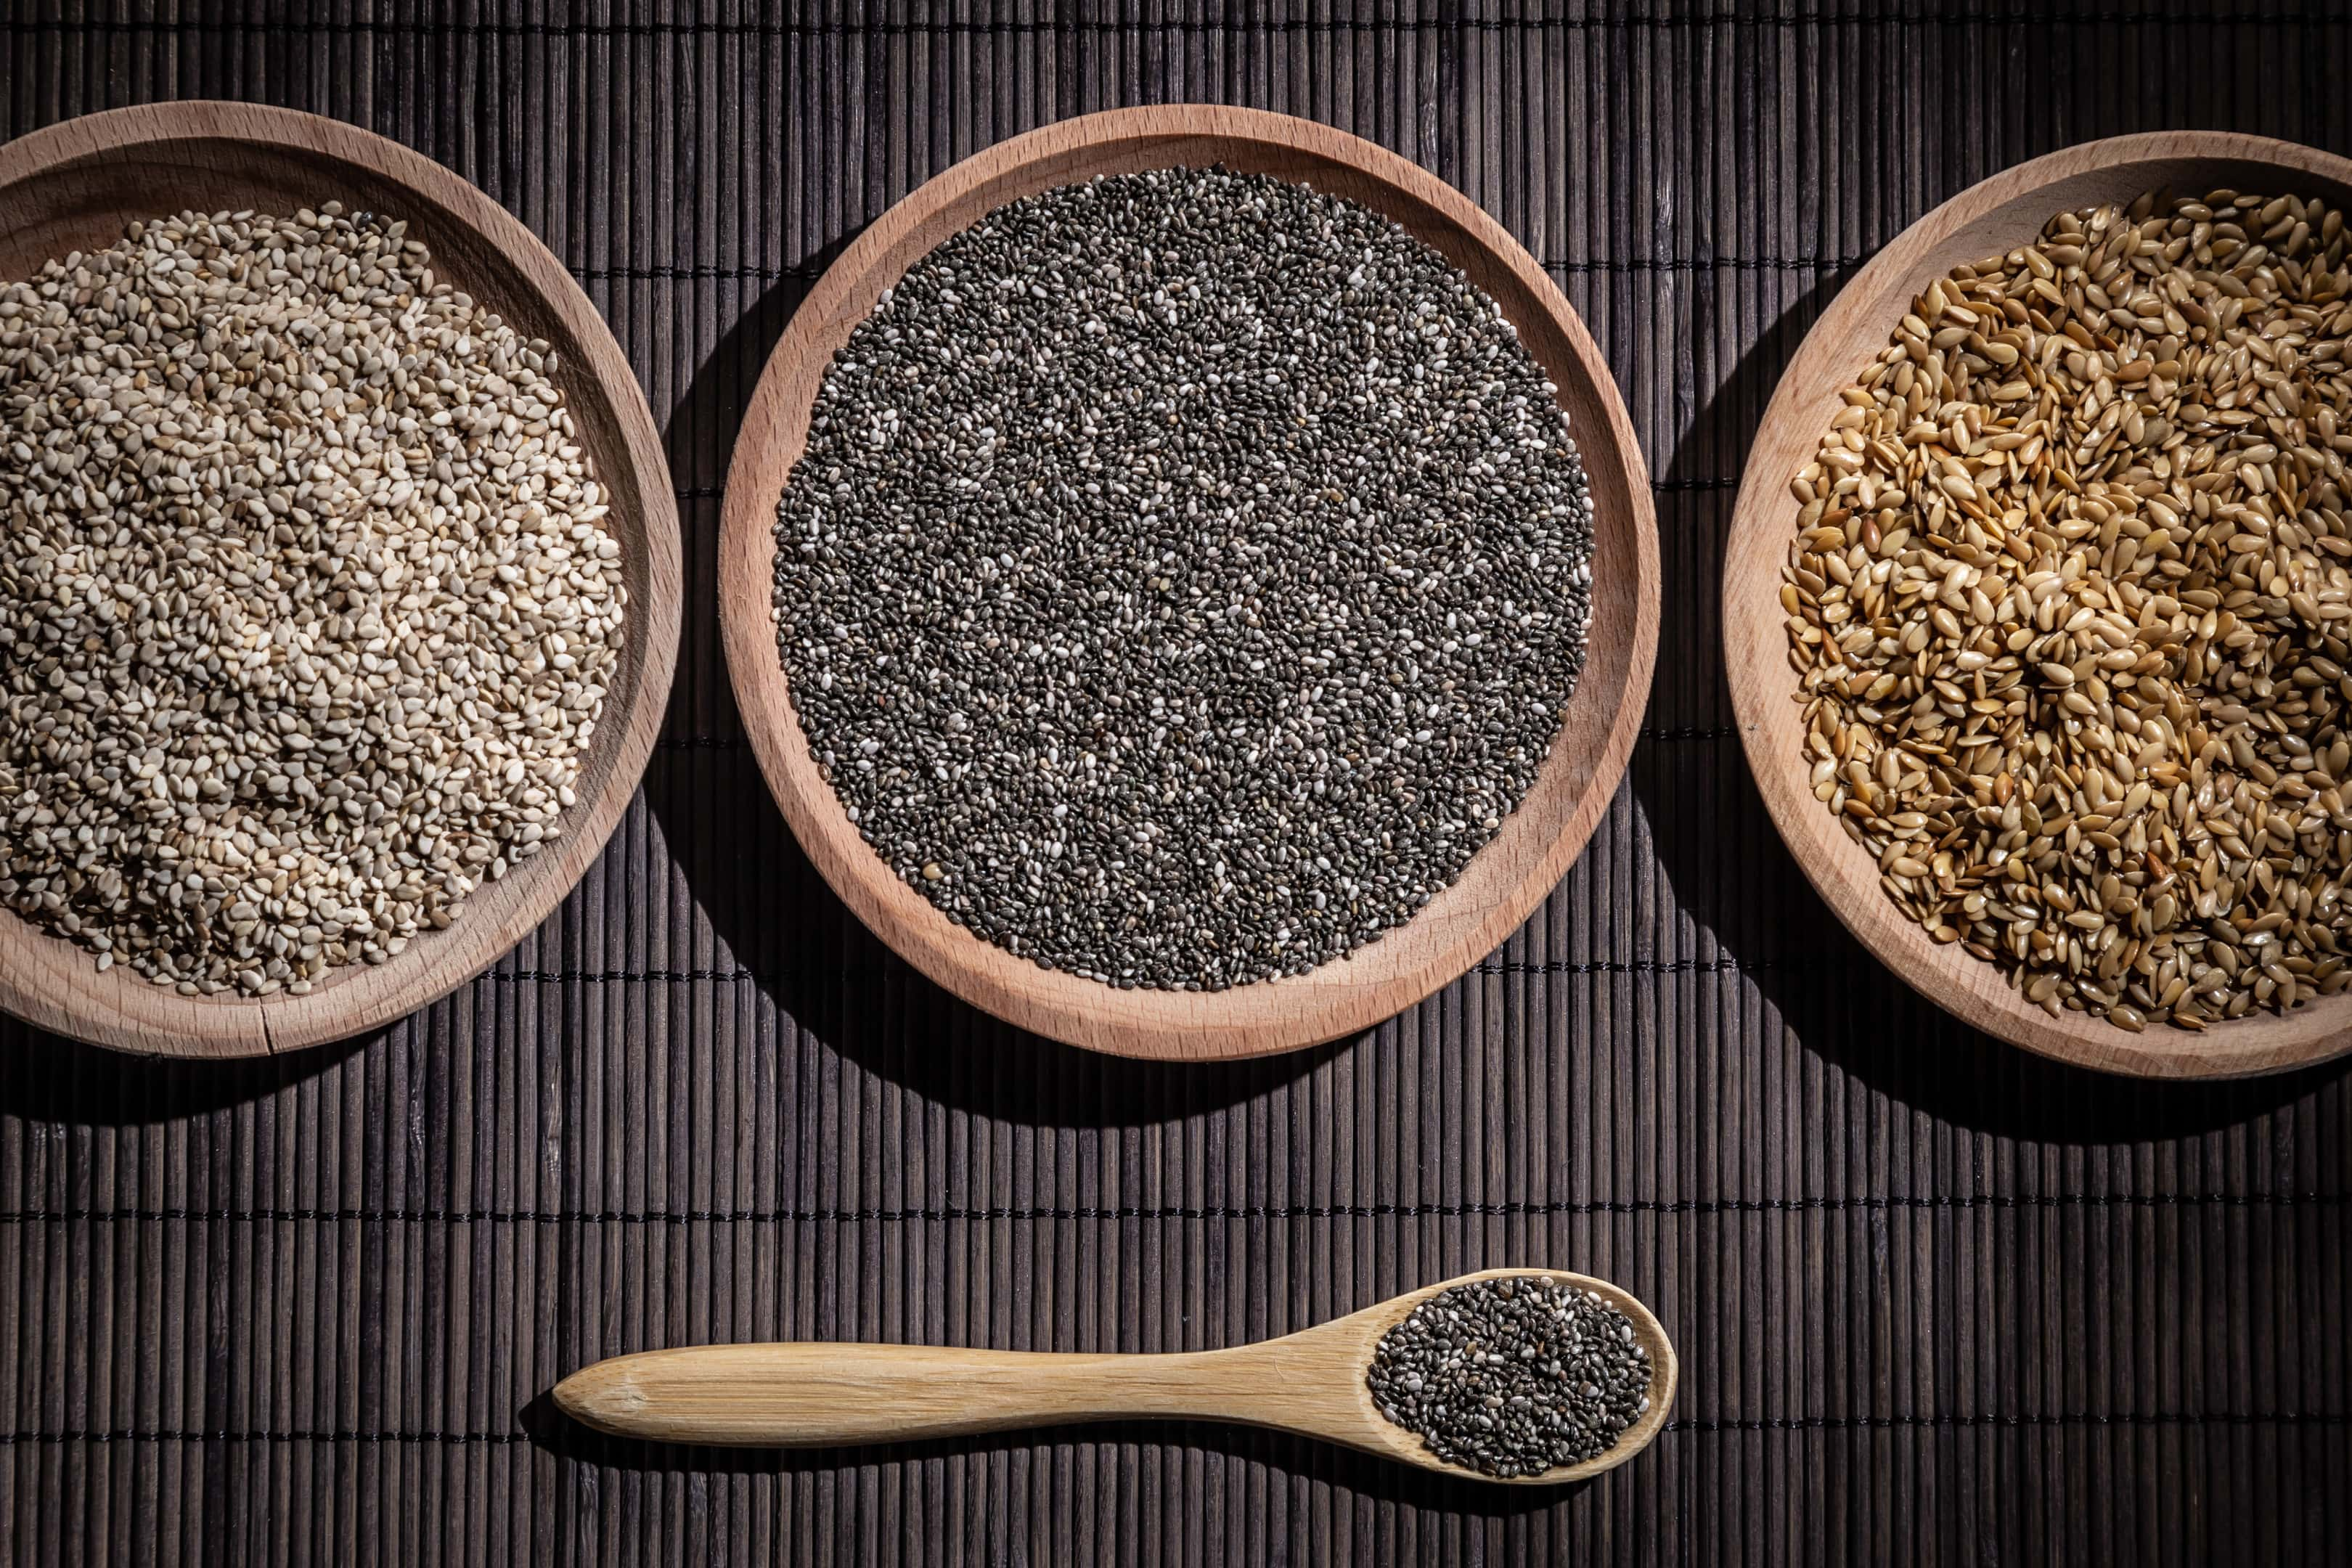 Sesame Chia and Flax Seeds in Wooden Dishes